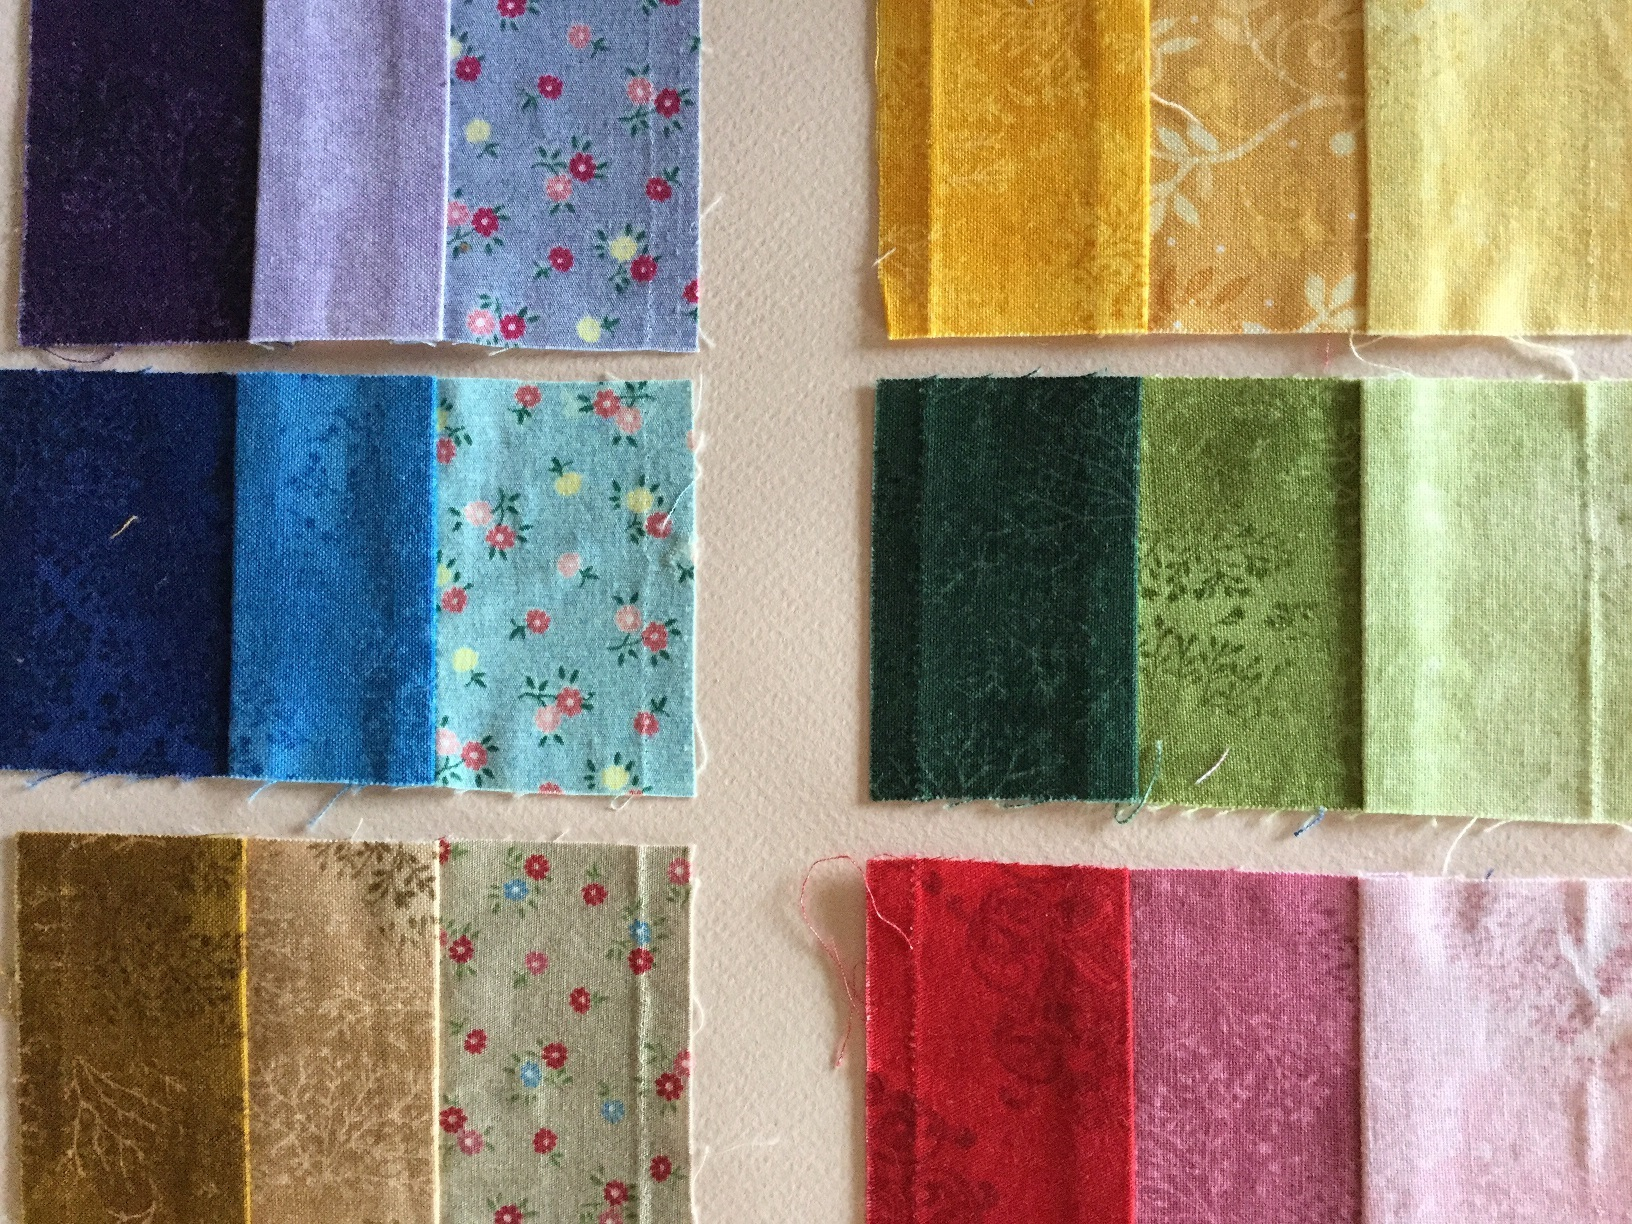 printed textile colour swatches - complimentary and value